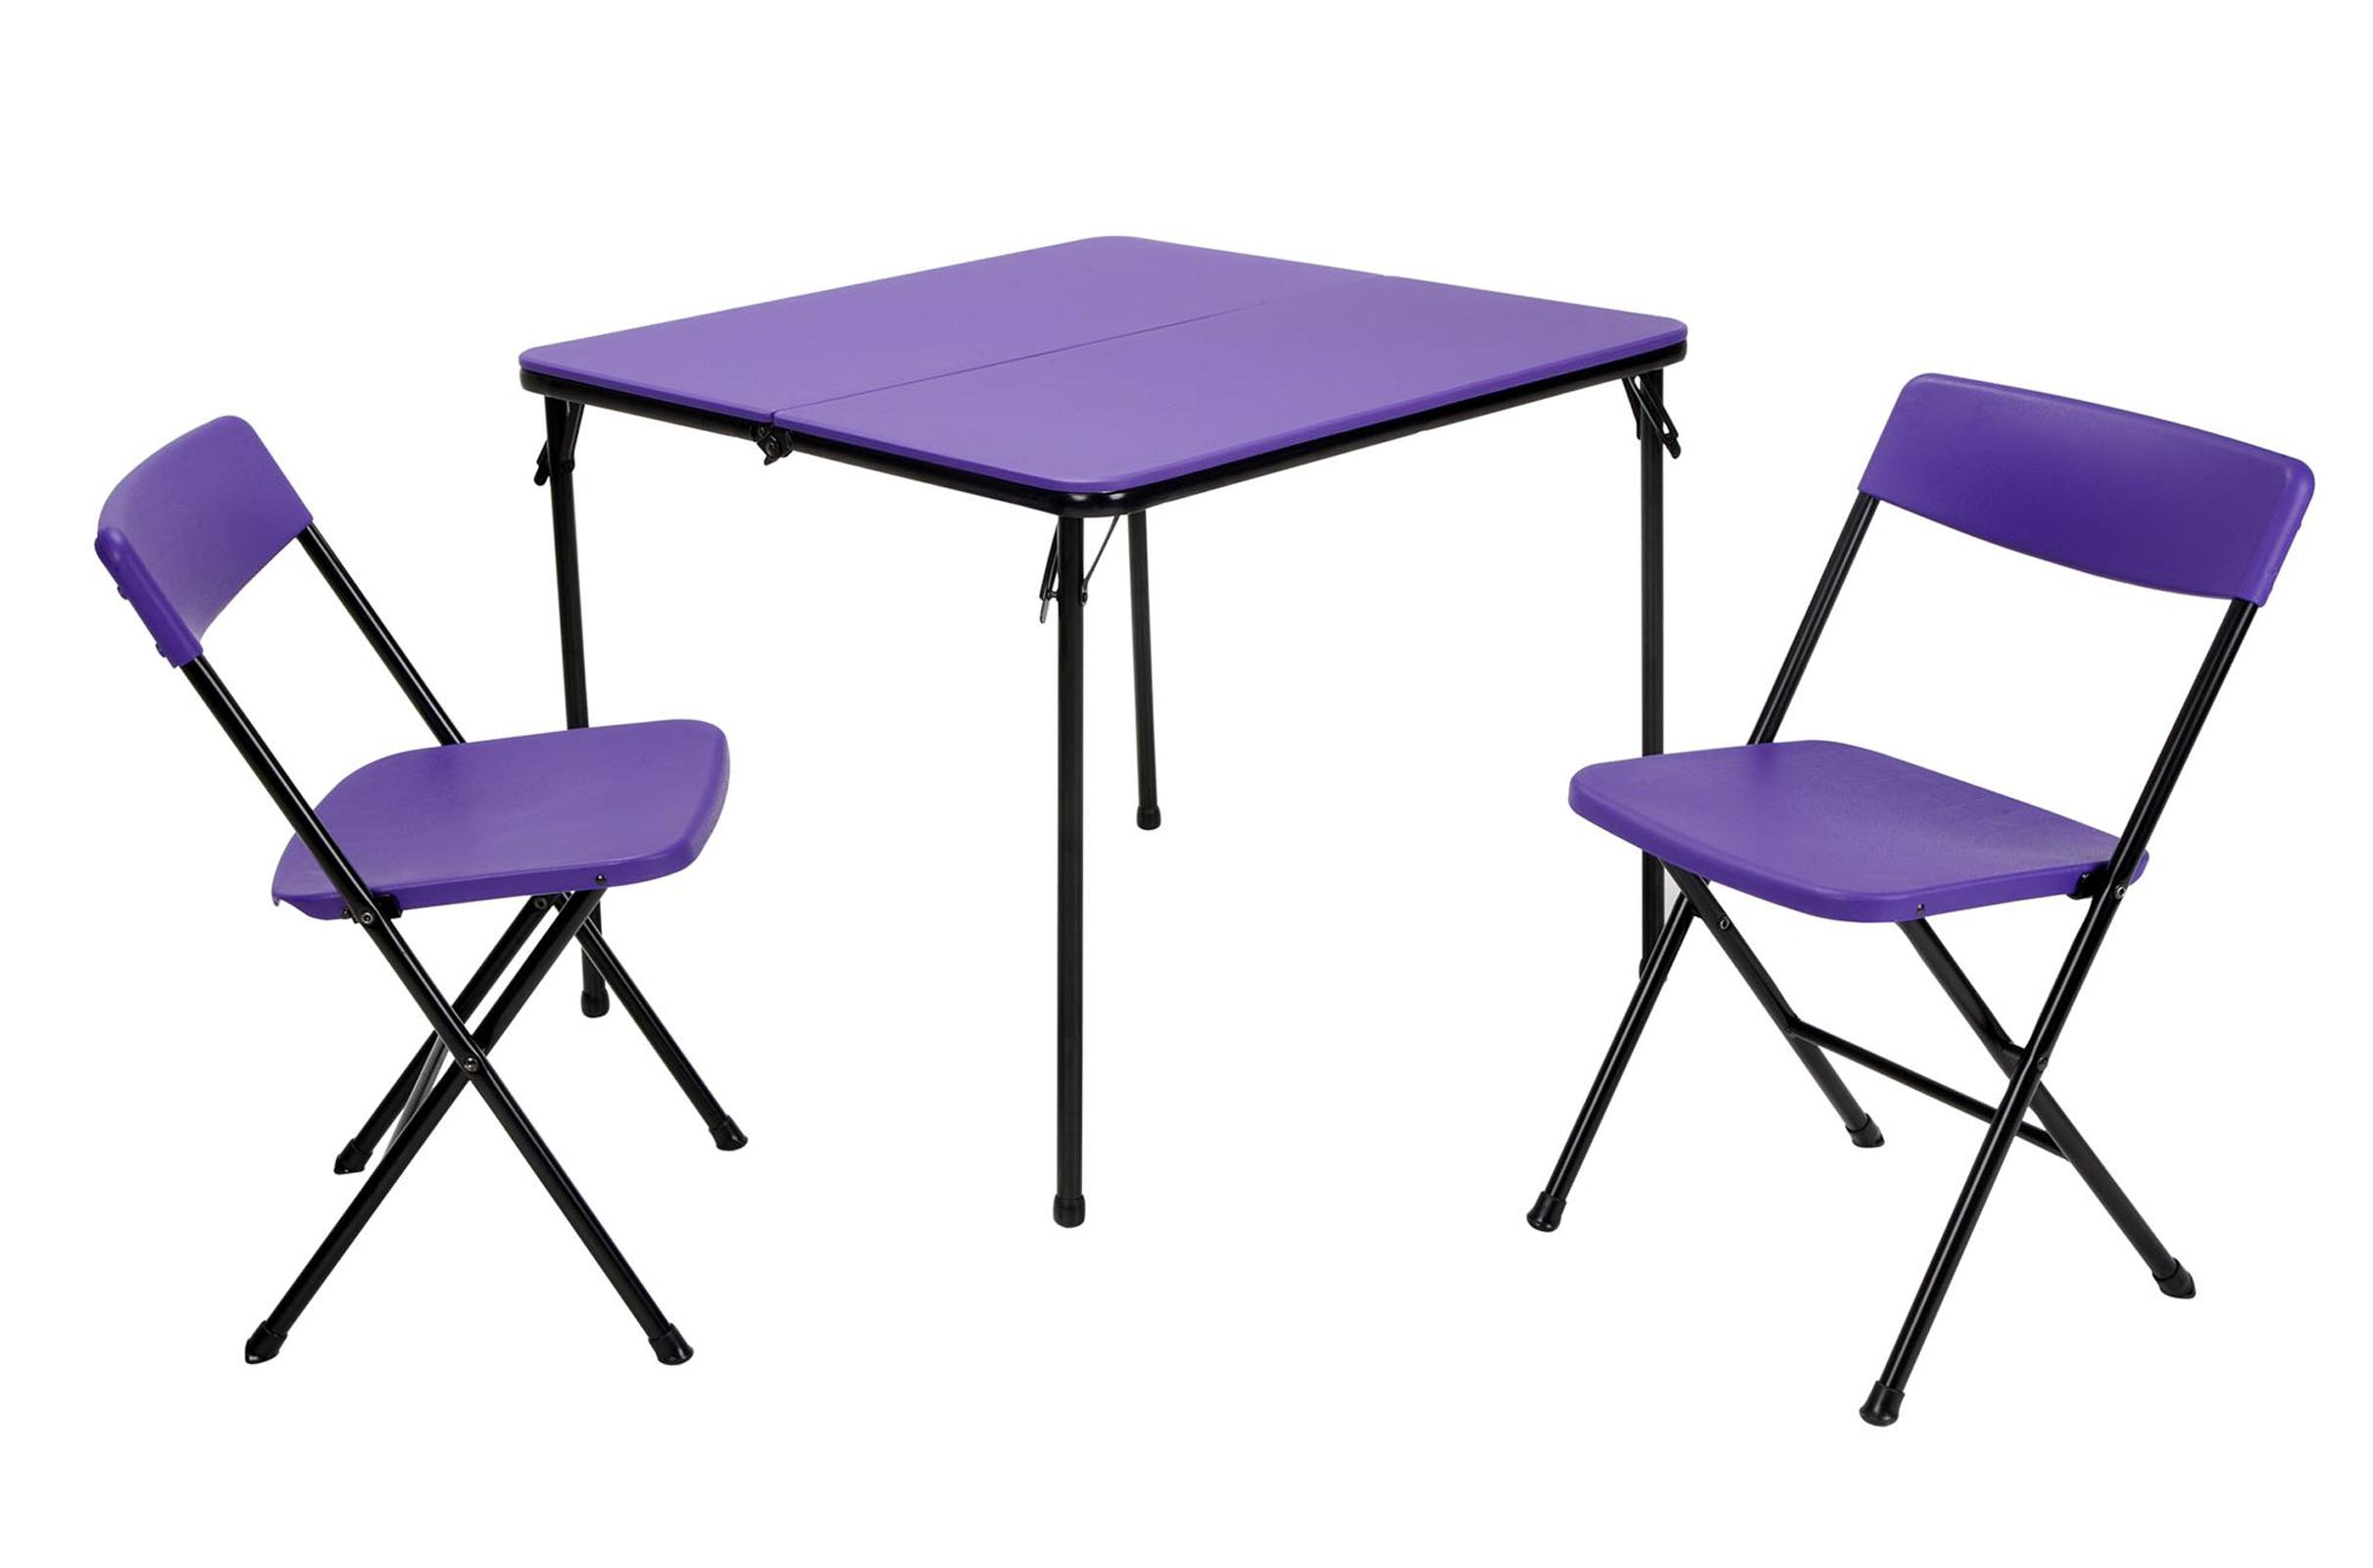 Cosco Card Table And Chairs Cosco Home And Office Products 3 Piece Purple Center Fold